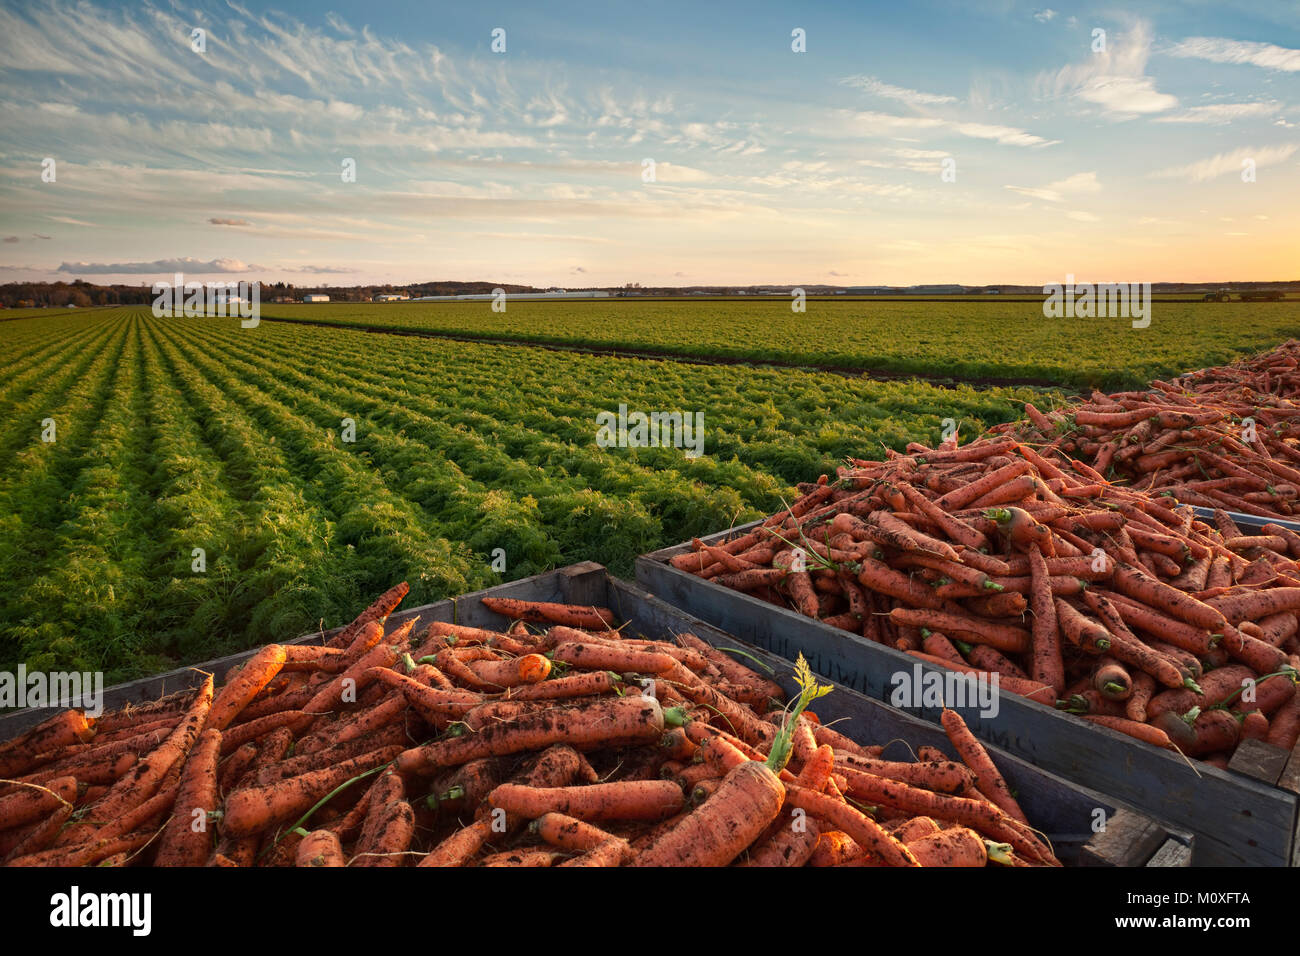 Crates of carrots with a mature field of carrots in the background.  Holland marsh in Bradford West Gwillimbury, - Stock Image